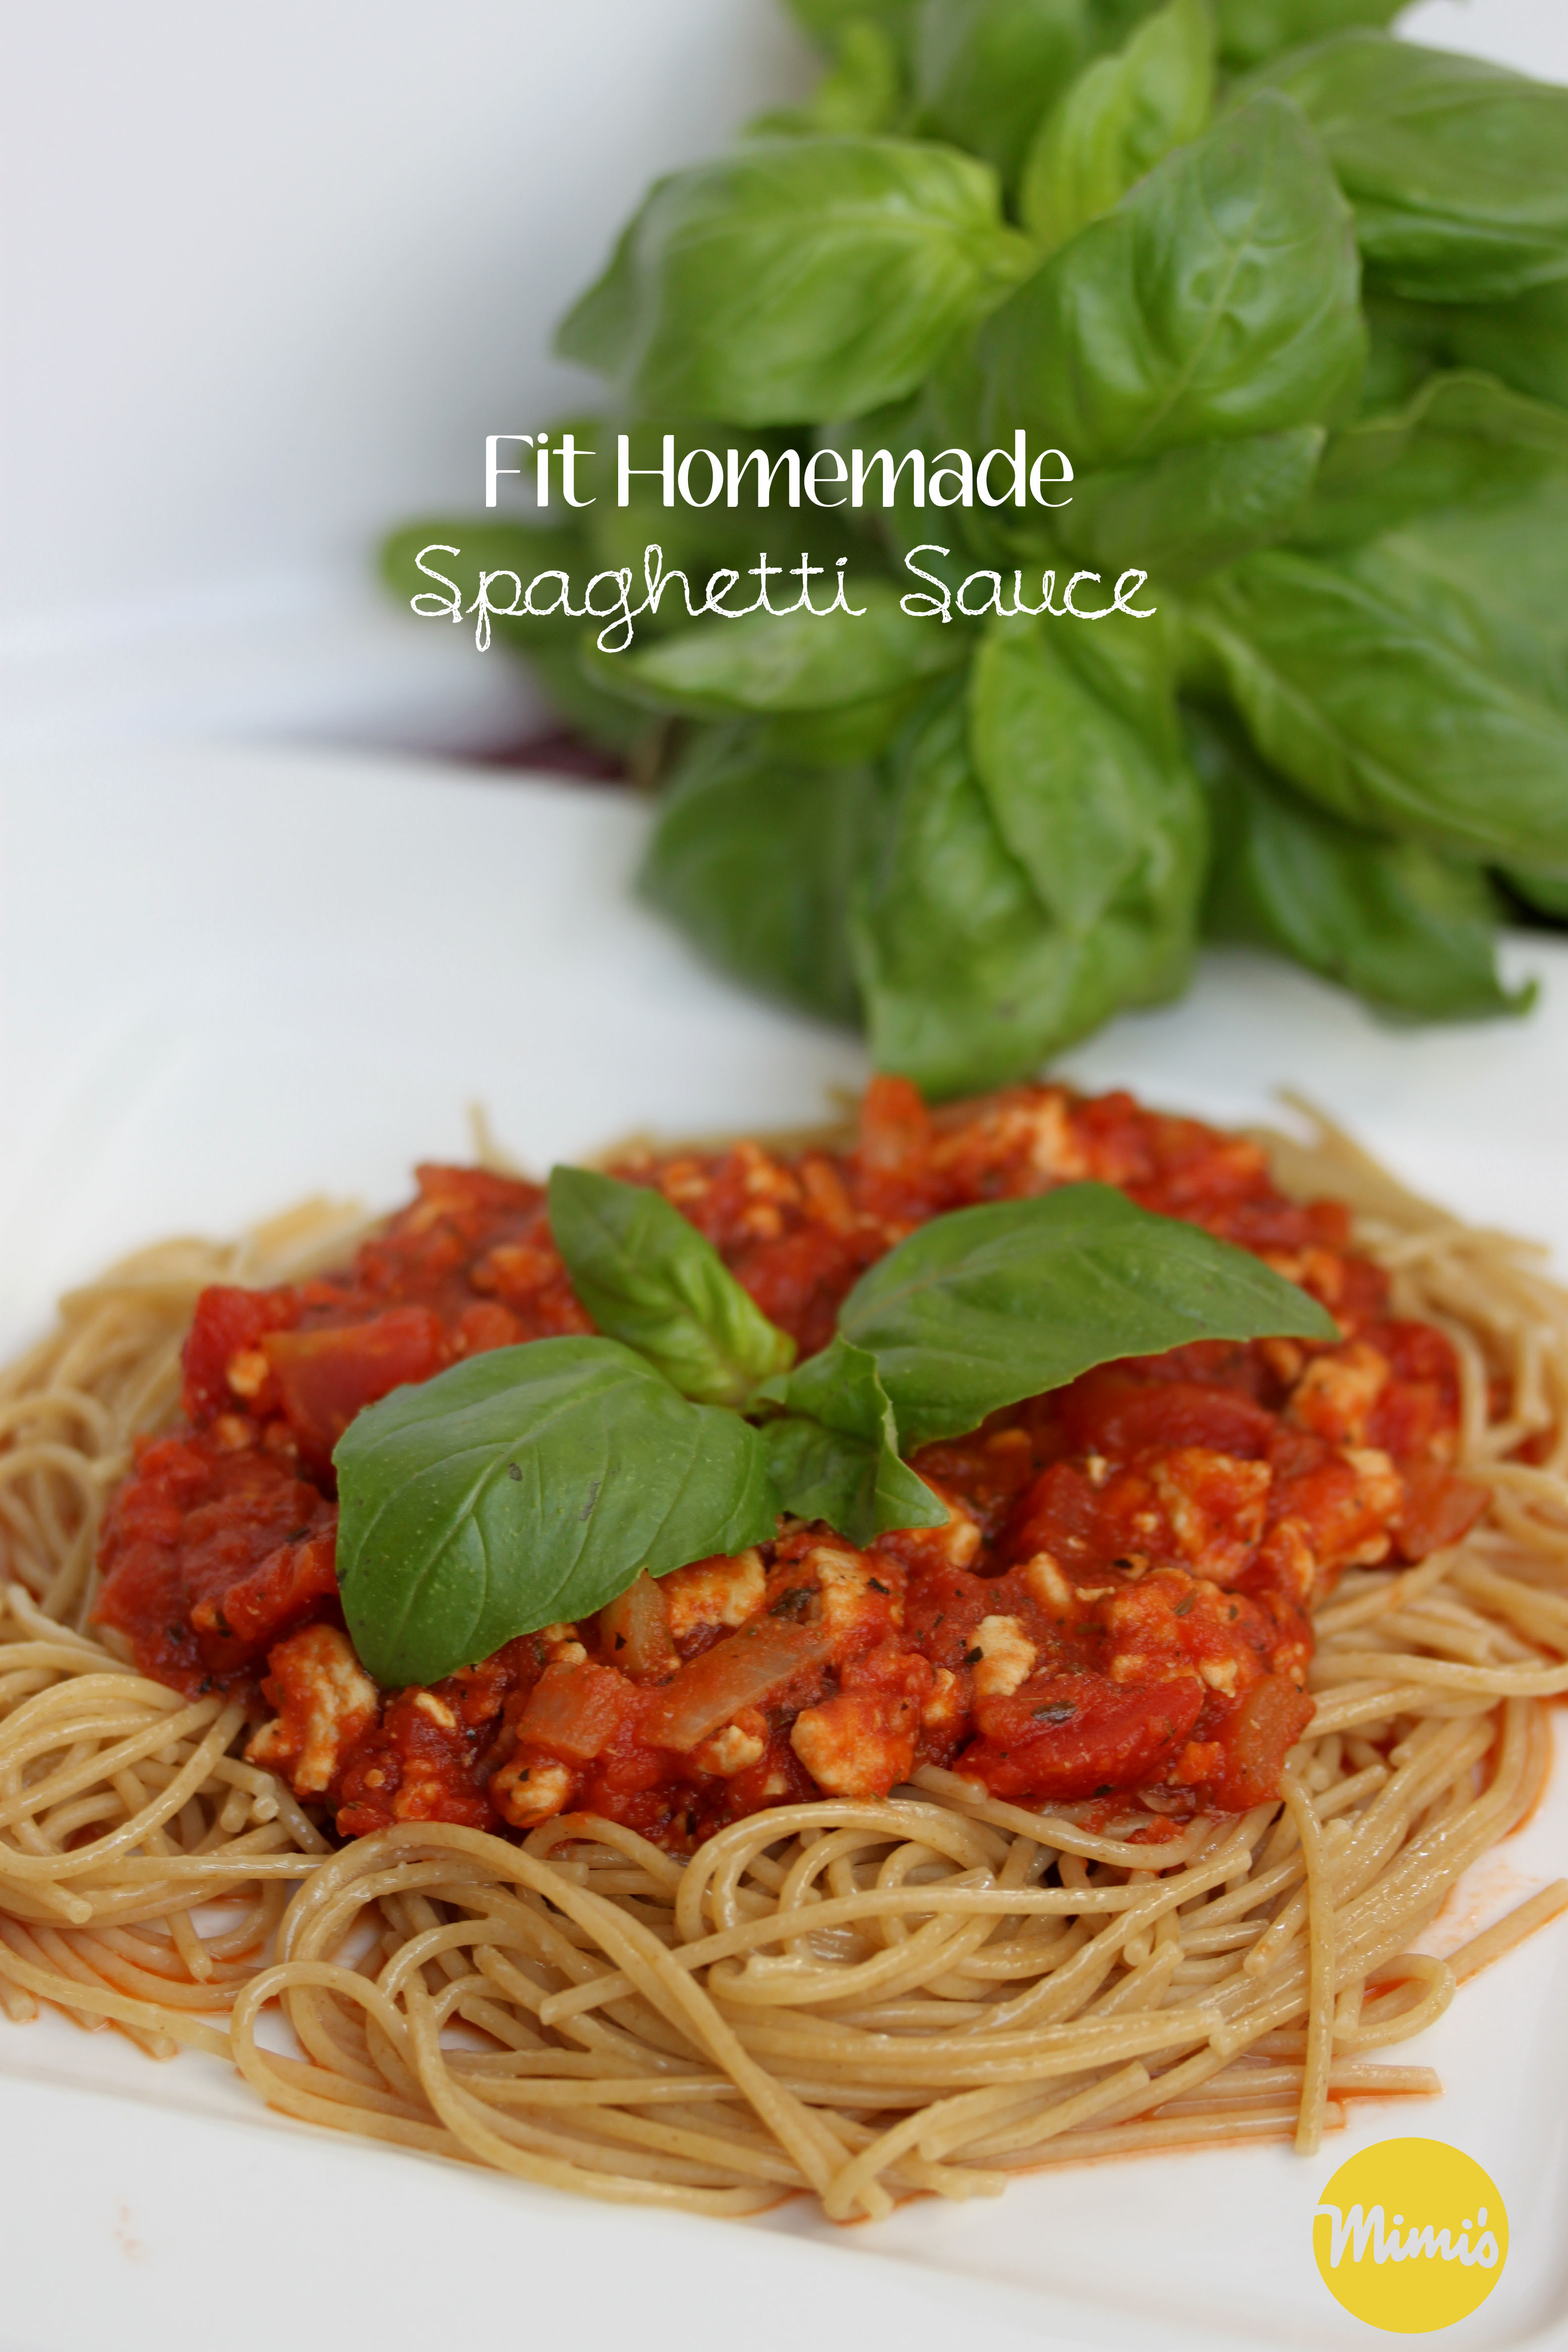 Fit Homemade Spaghetti Sauce | Mimi's Fit Foods